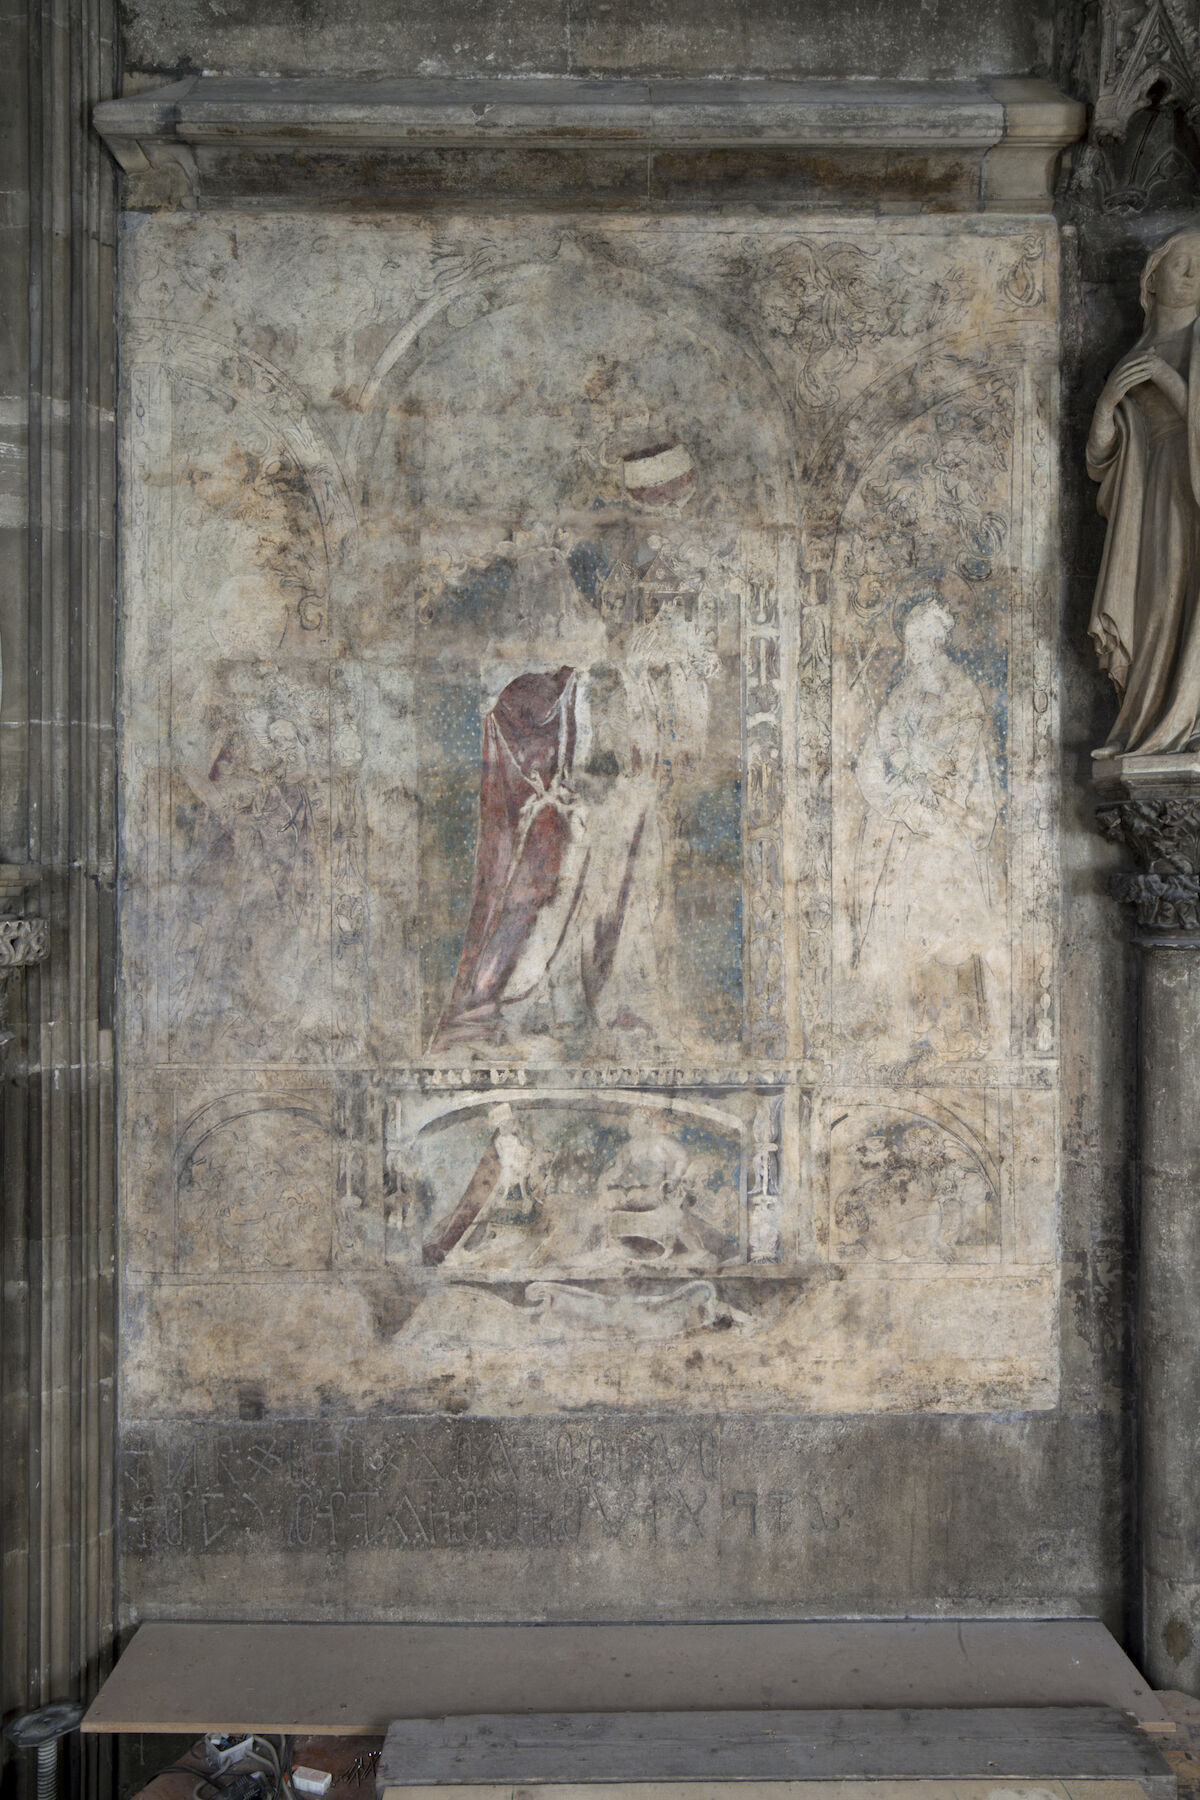 The wall painting at St. Stephen's Cathedral in Vienna that may have been executed by Albrecht Dürer. Photo © Federal Monuments Authority Austria, Vienna, Irene Dworak.